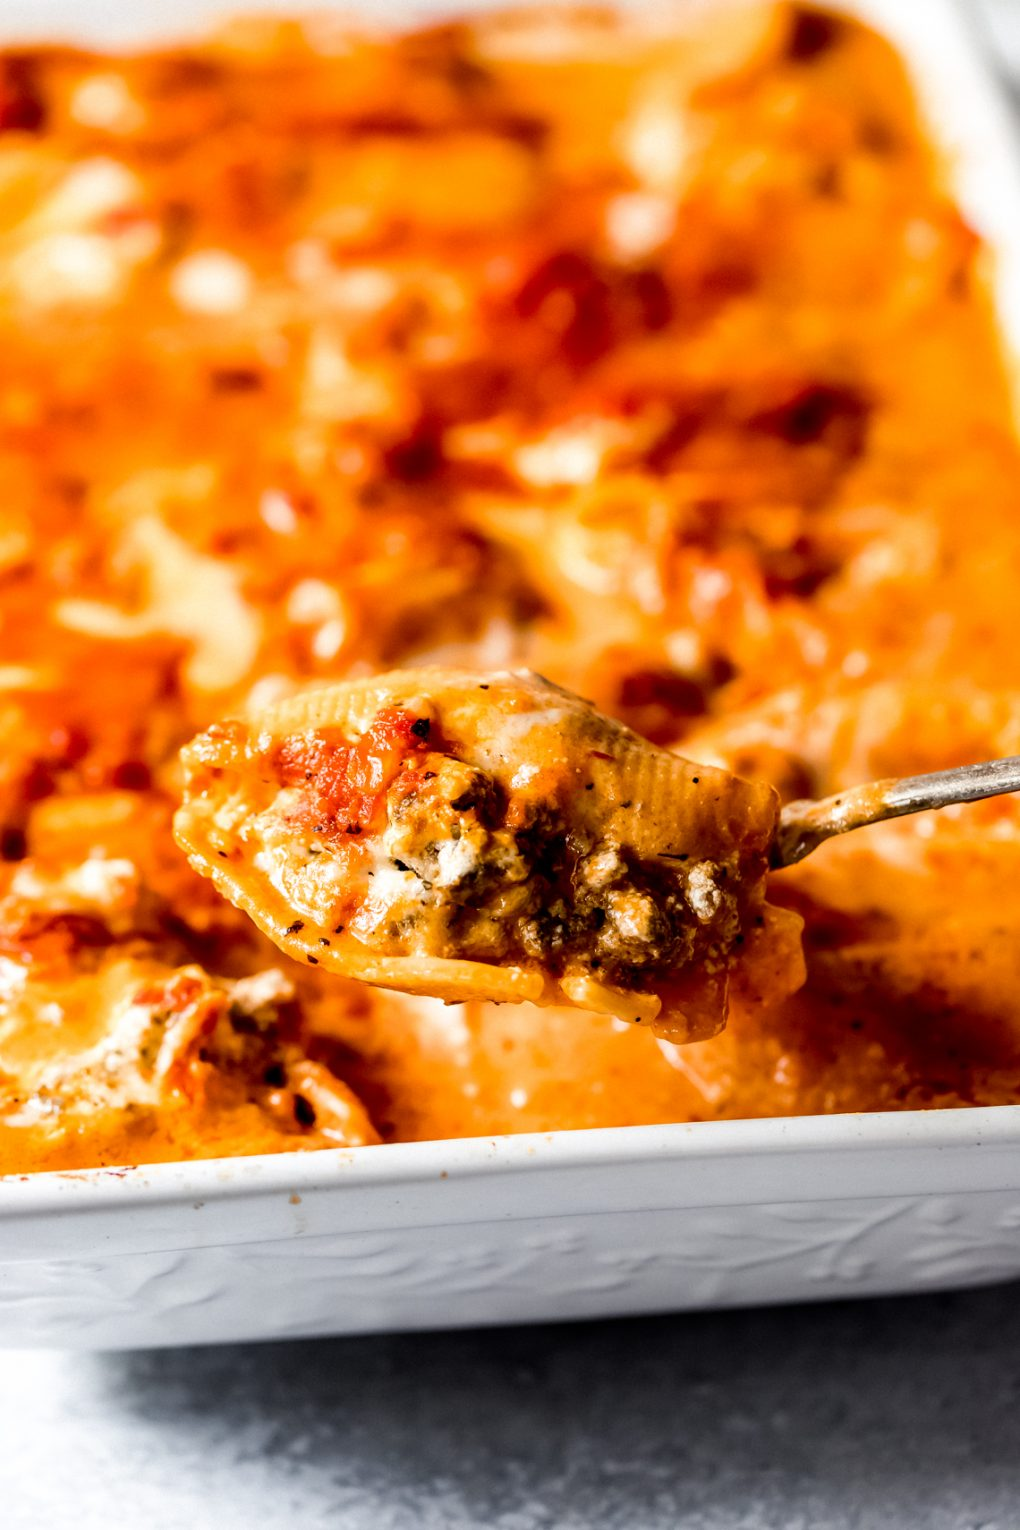 a person spooning out one venison stuffed shell